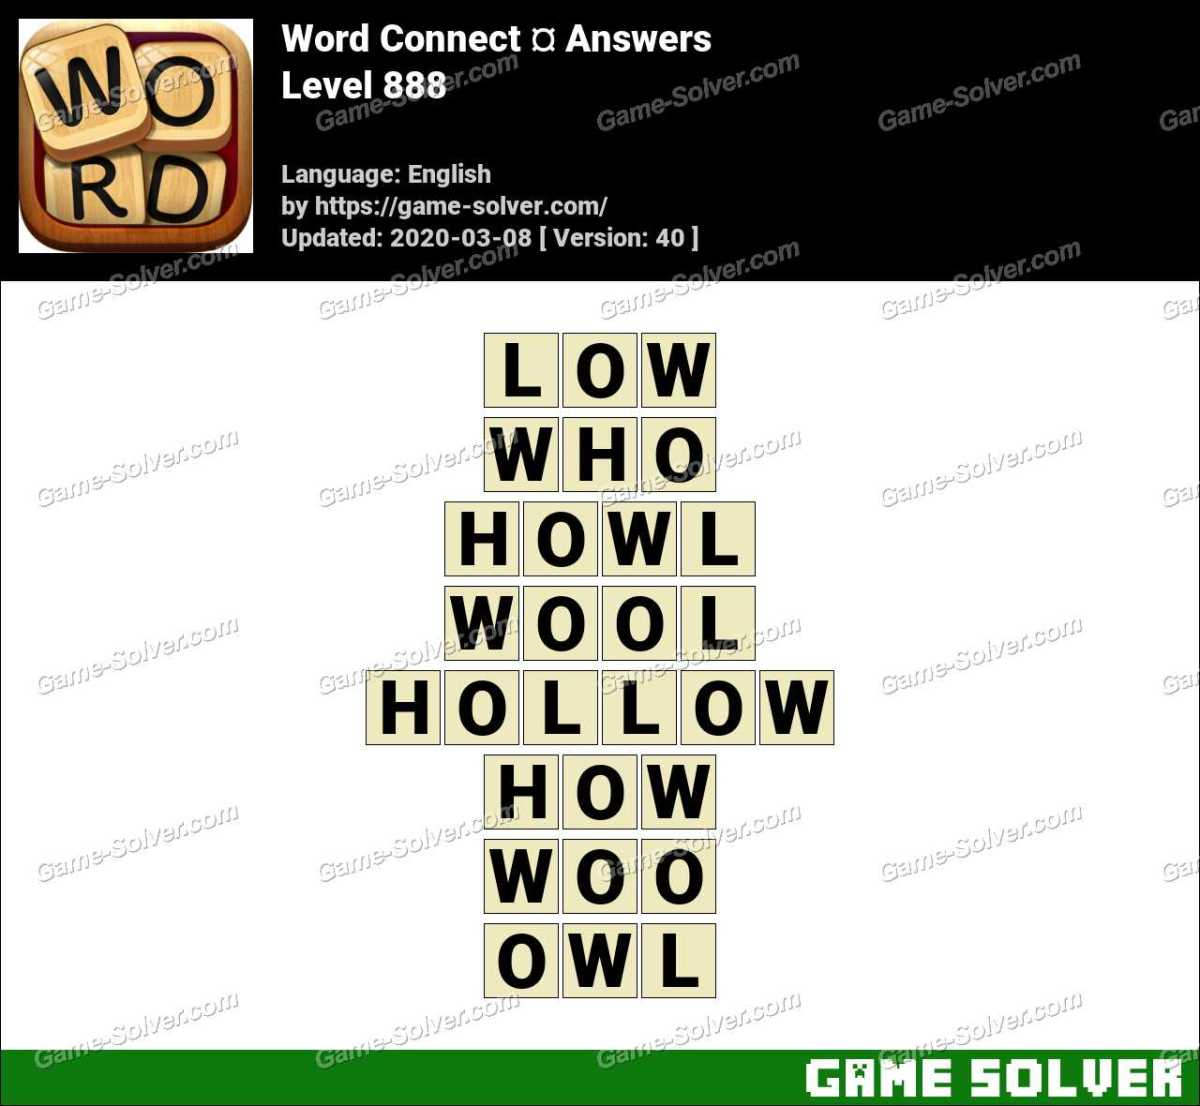 Word Connect Level 888 Answers